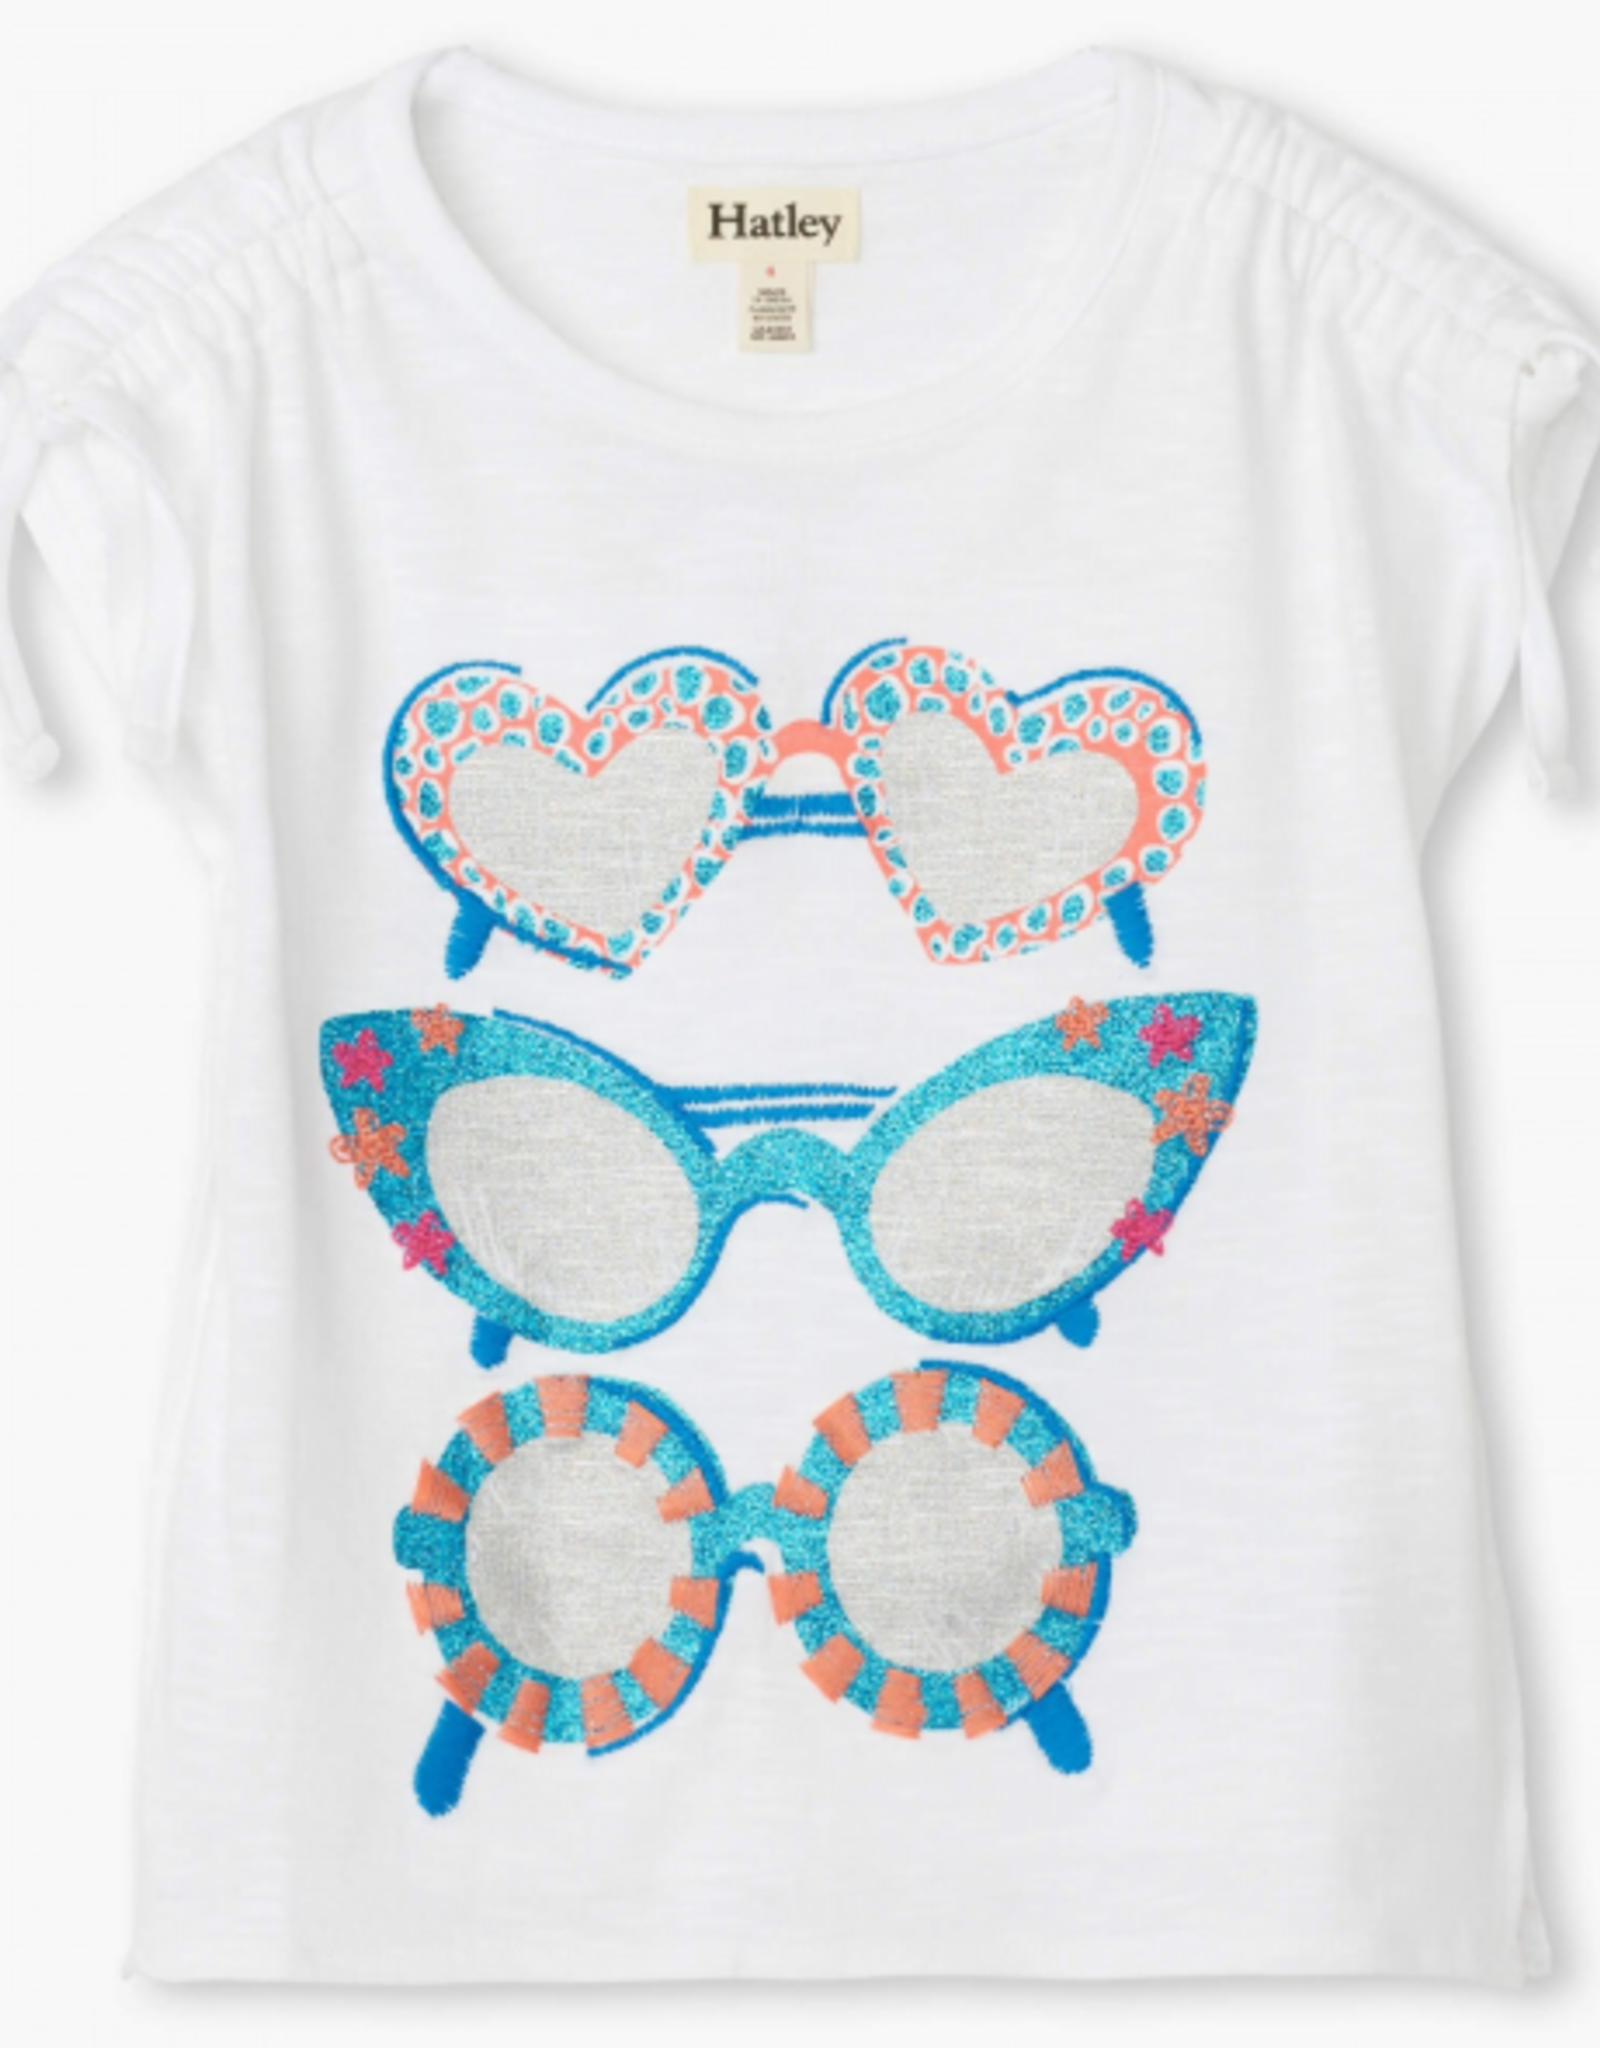 Hatley Snazzy Sunglasses Cinched Shoulder Tee